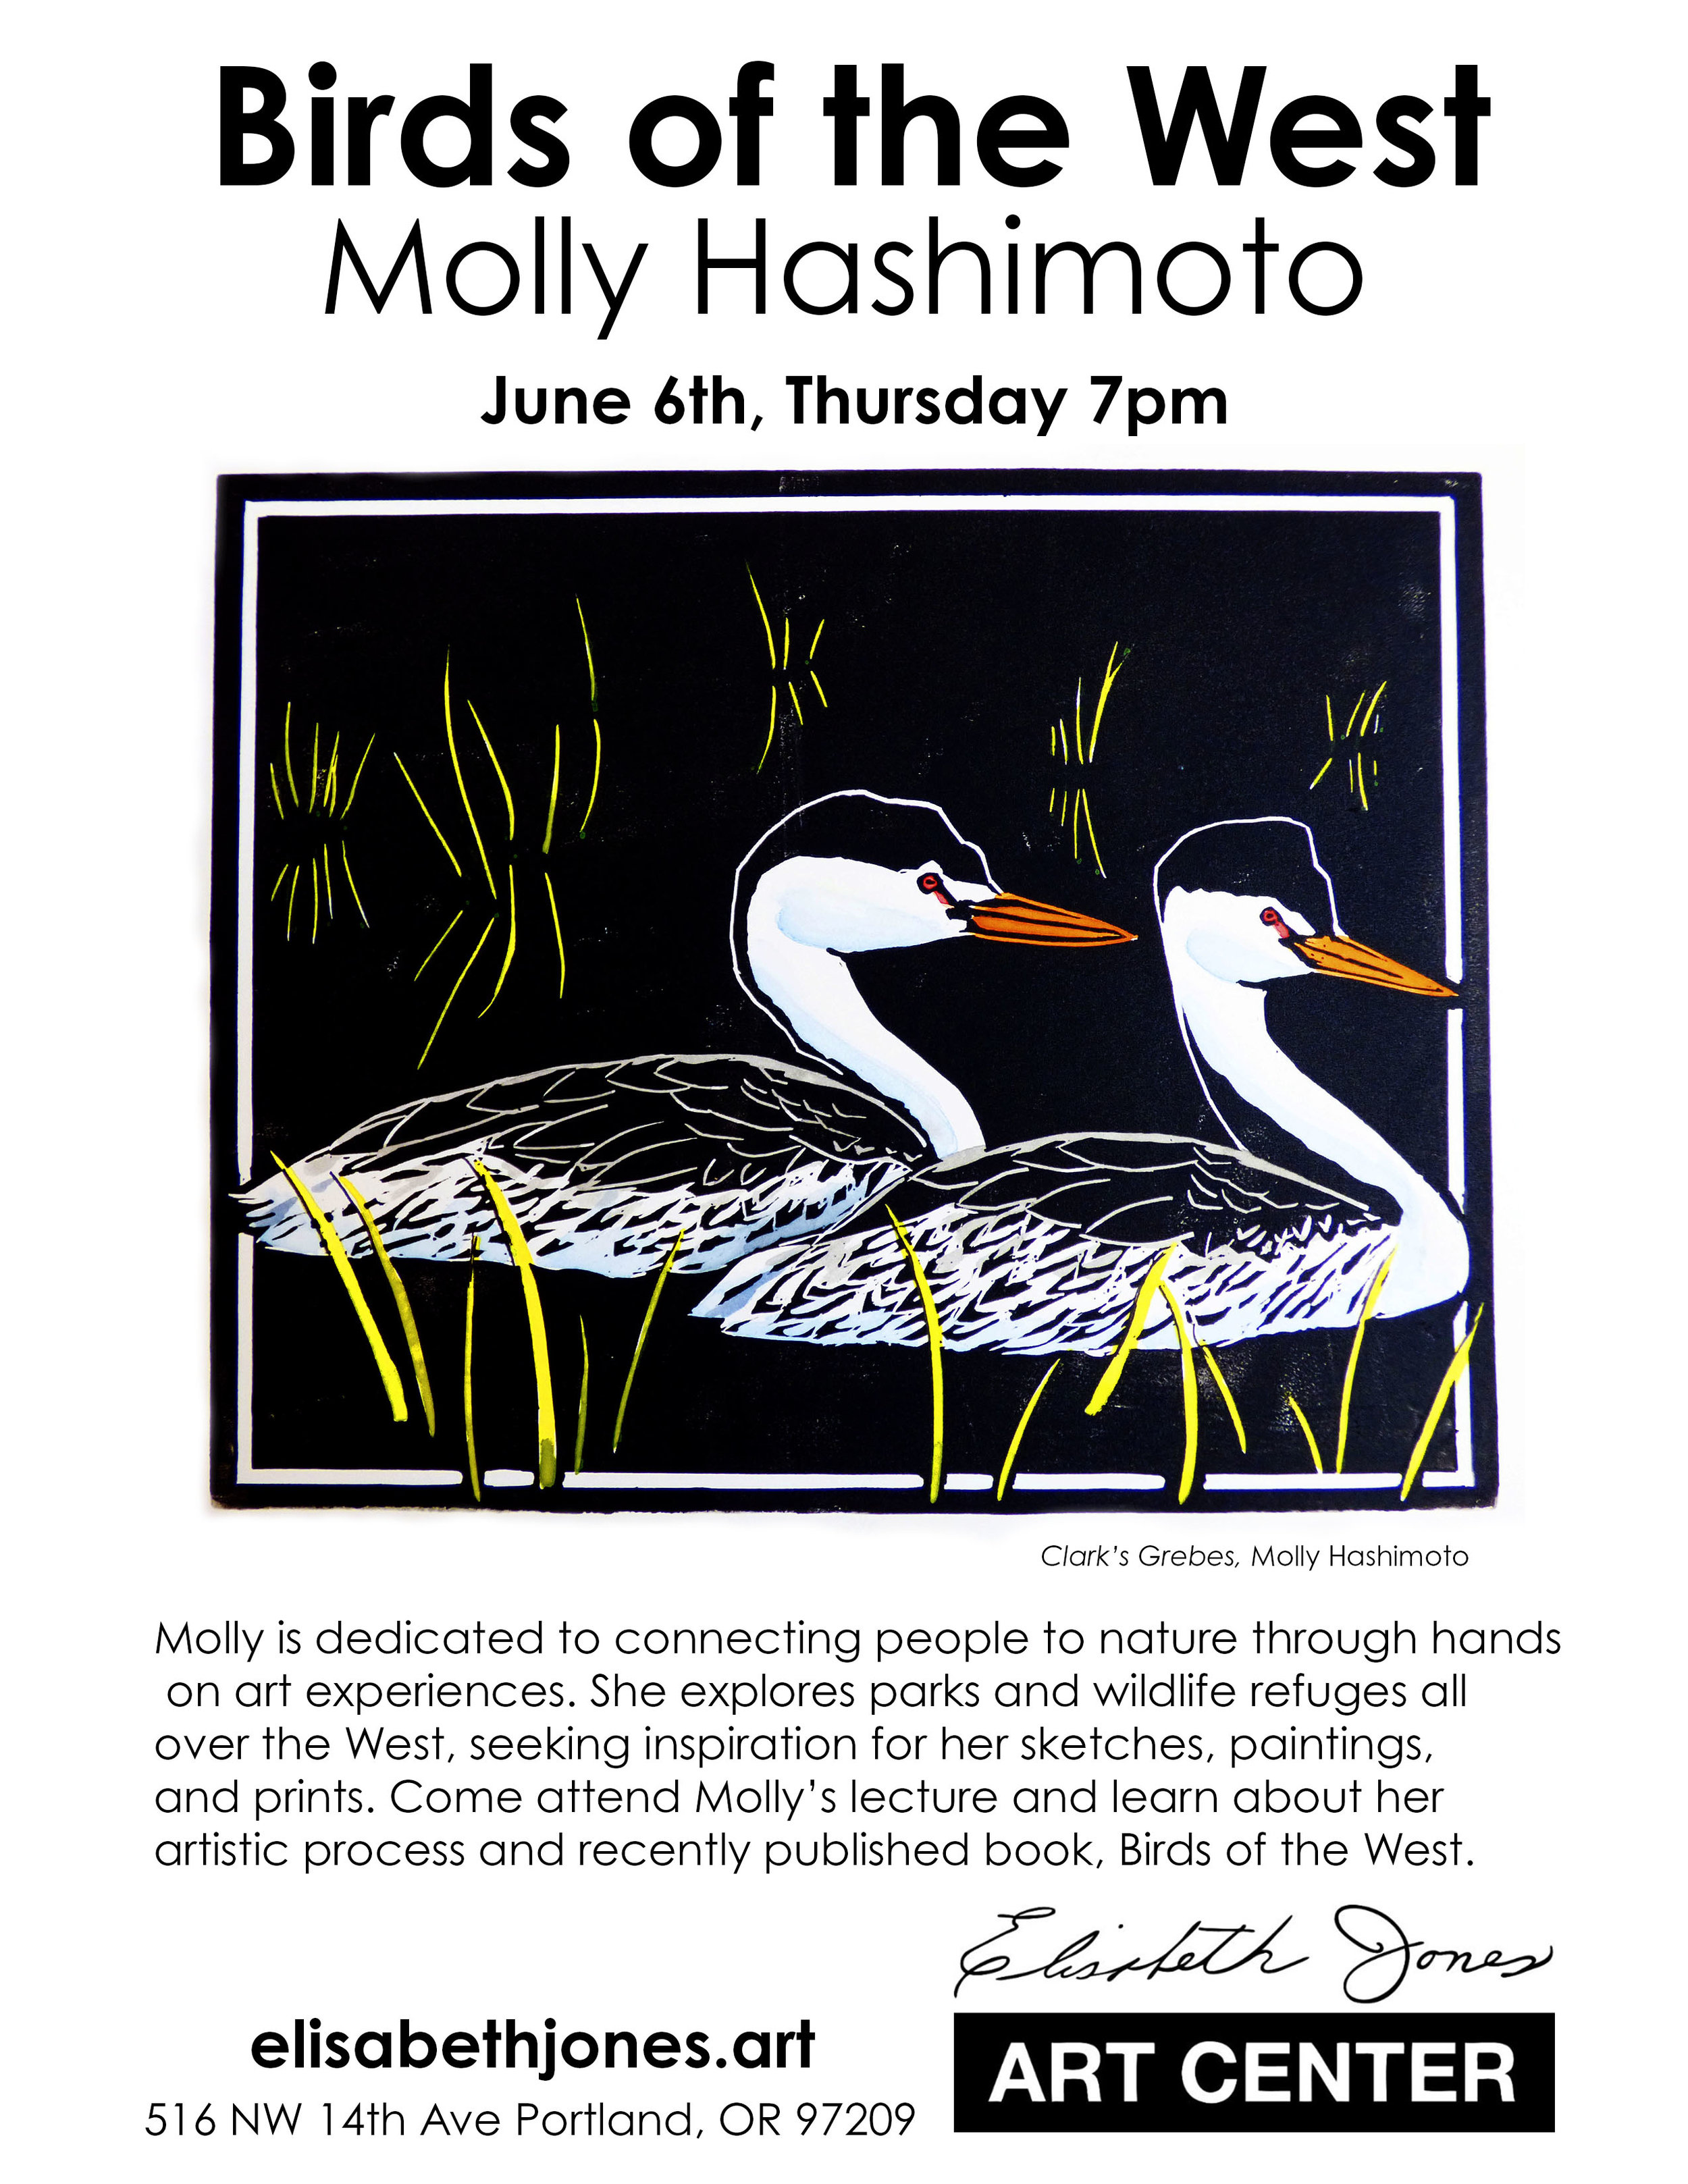 Molly Hashimoto poster 8.5x11 (1) Elisabeth Jones Art Center.jpg